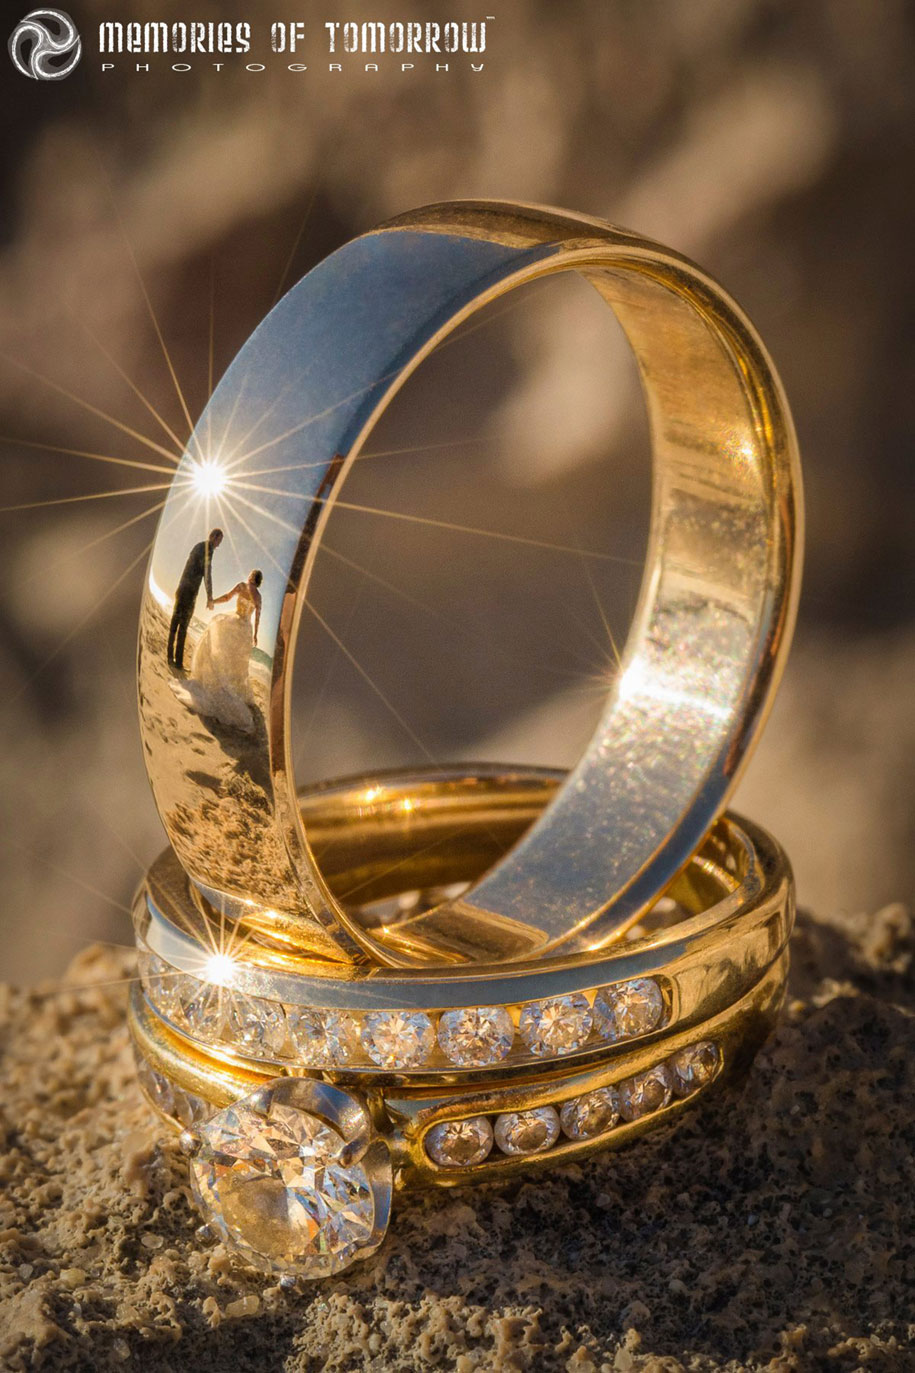 eye-reflection-wedding-photography-eyescapes-peter-adams-shawn-46